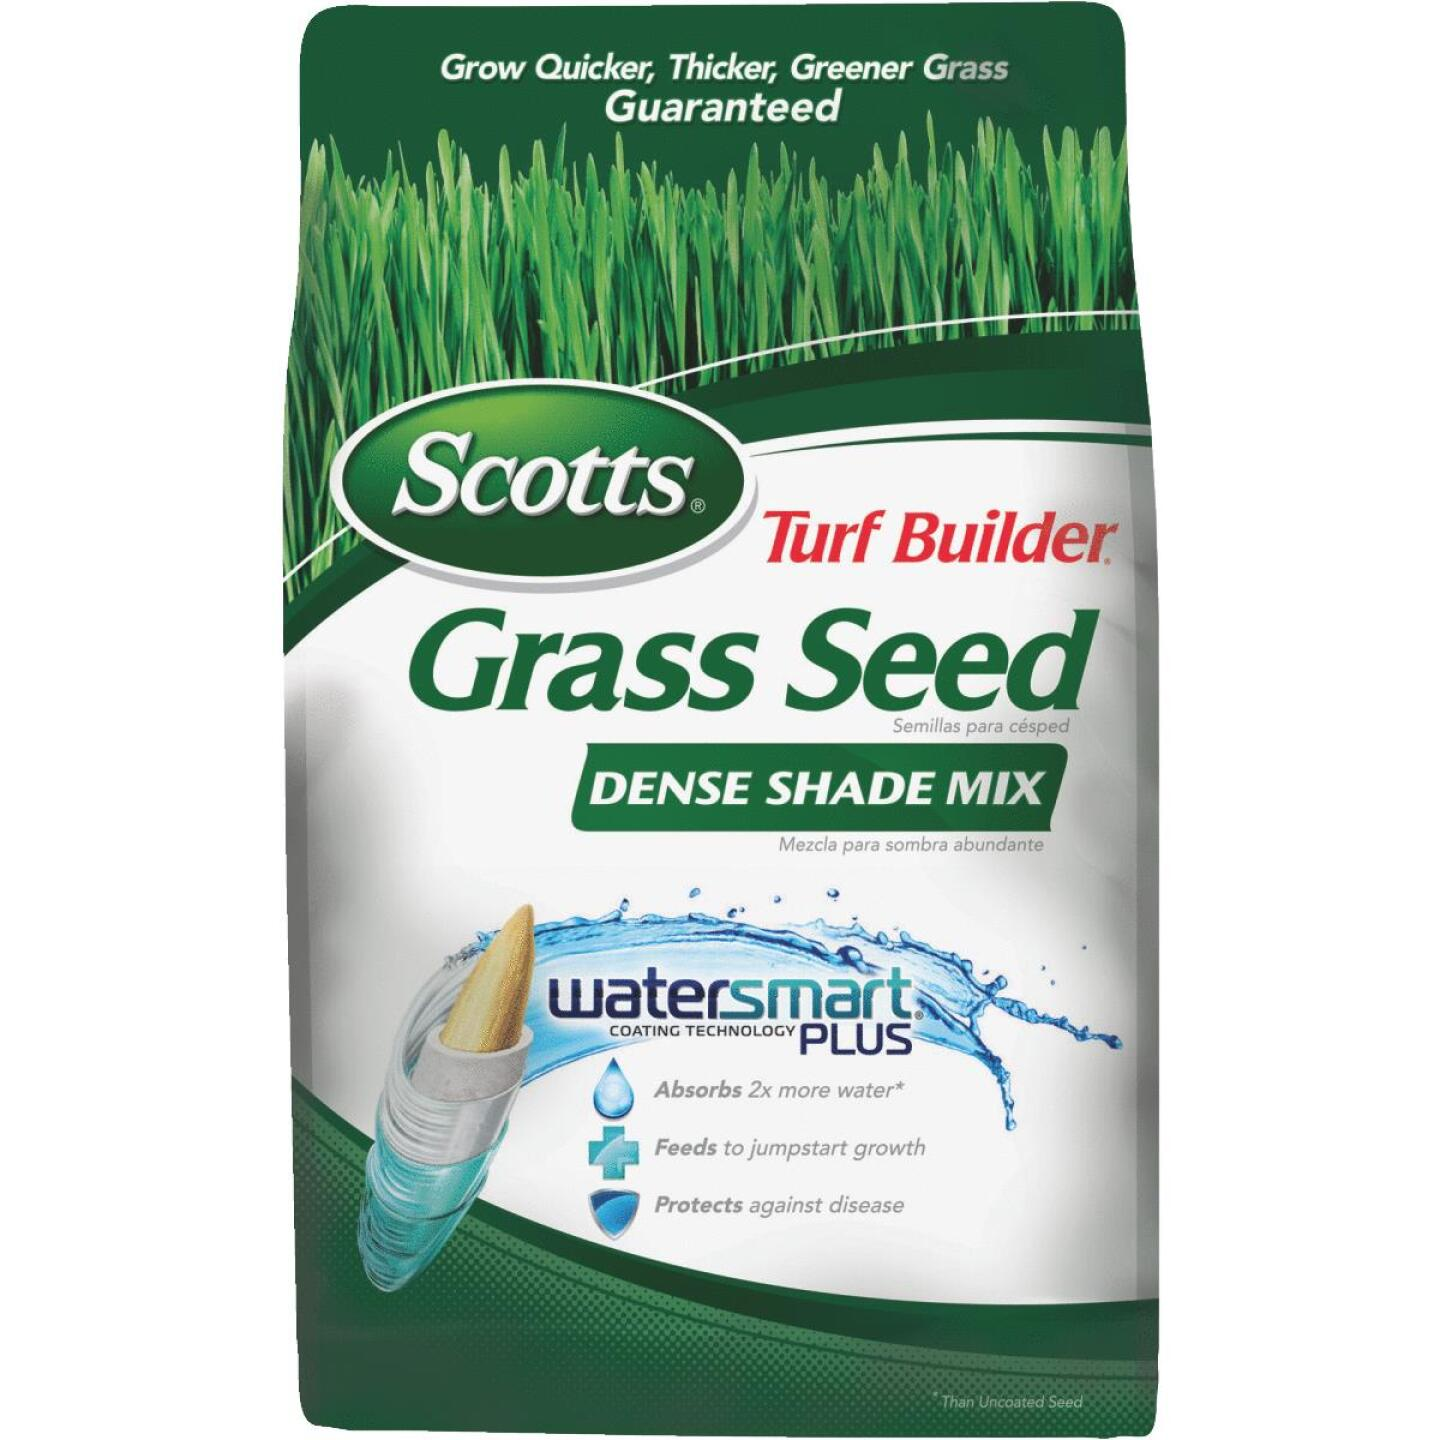 Scotts Turf Builder 3 Lb. Up To 750 Sq. Ft. Coverage Dense Shade Grass Seed Image 1